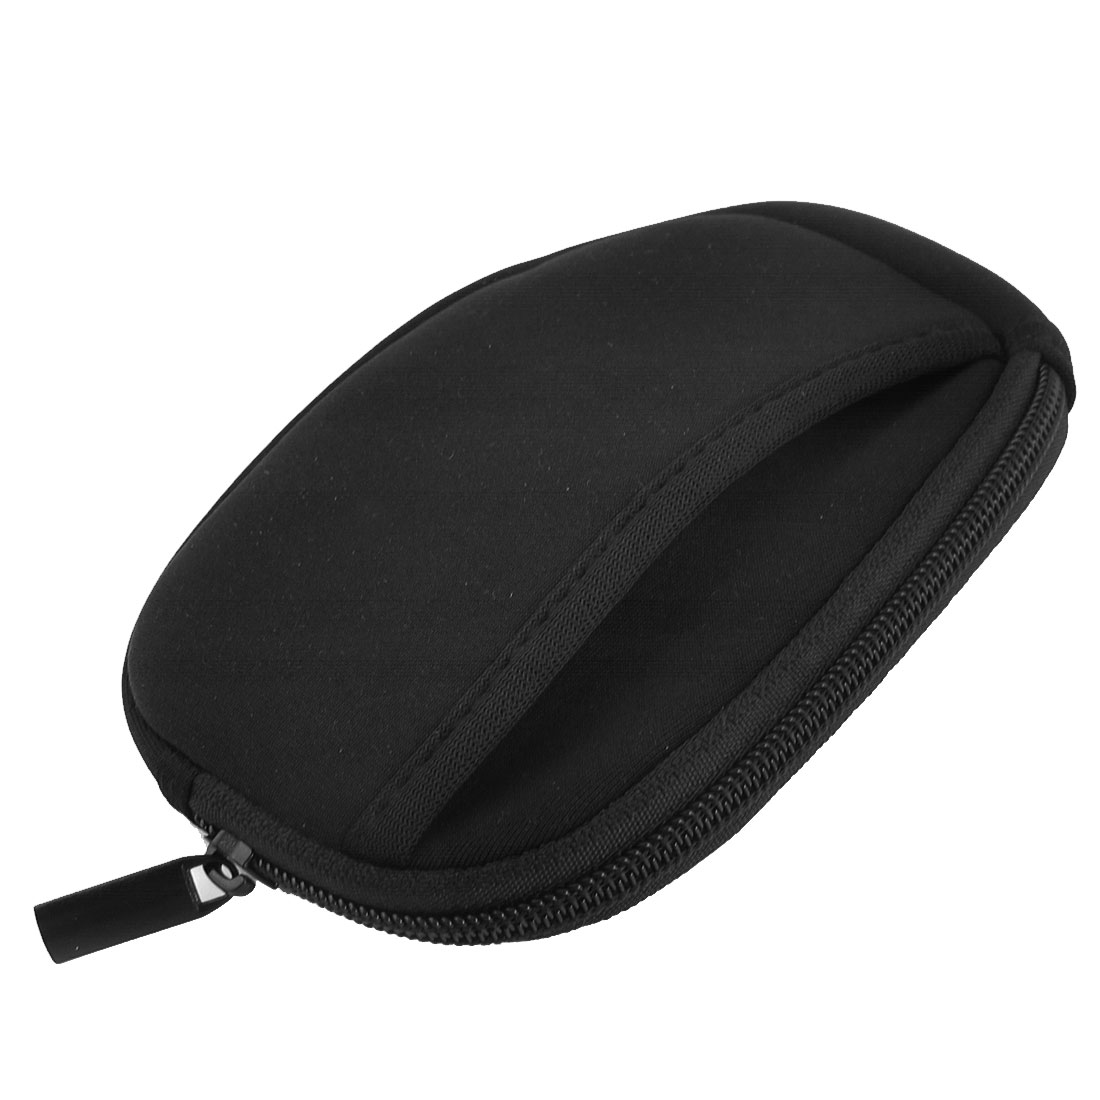 Zip-up Neoprene Sleeve Bag Carry Case Hard Drive Disk HDD Pouch Black